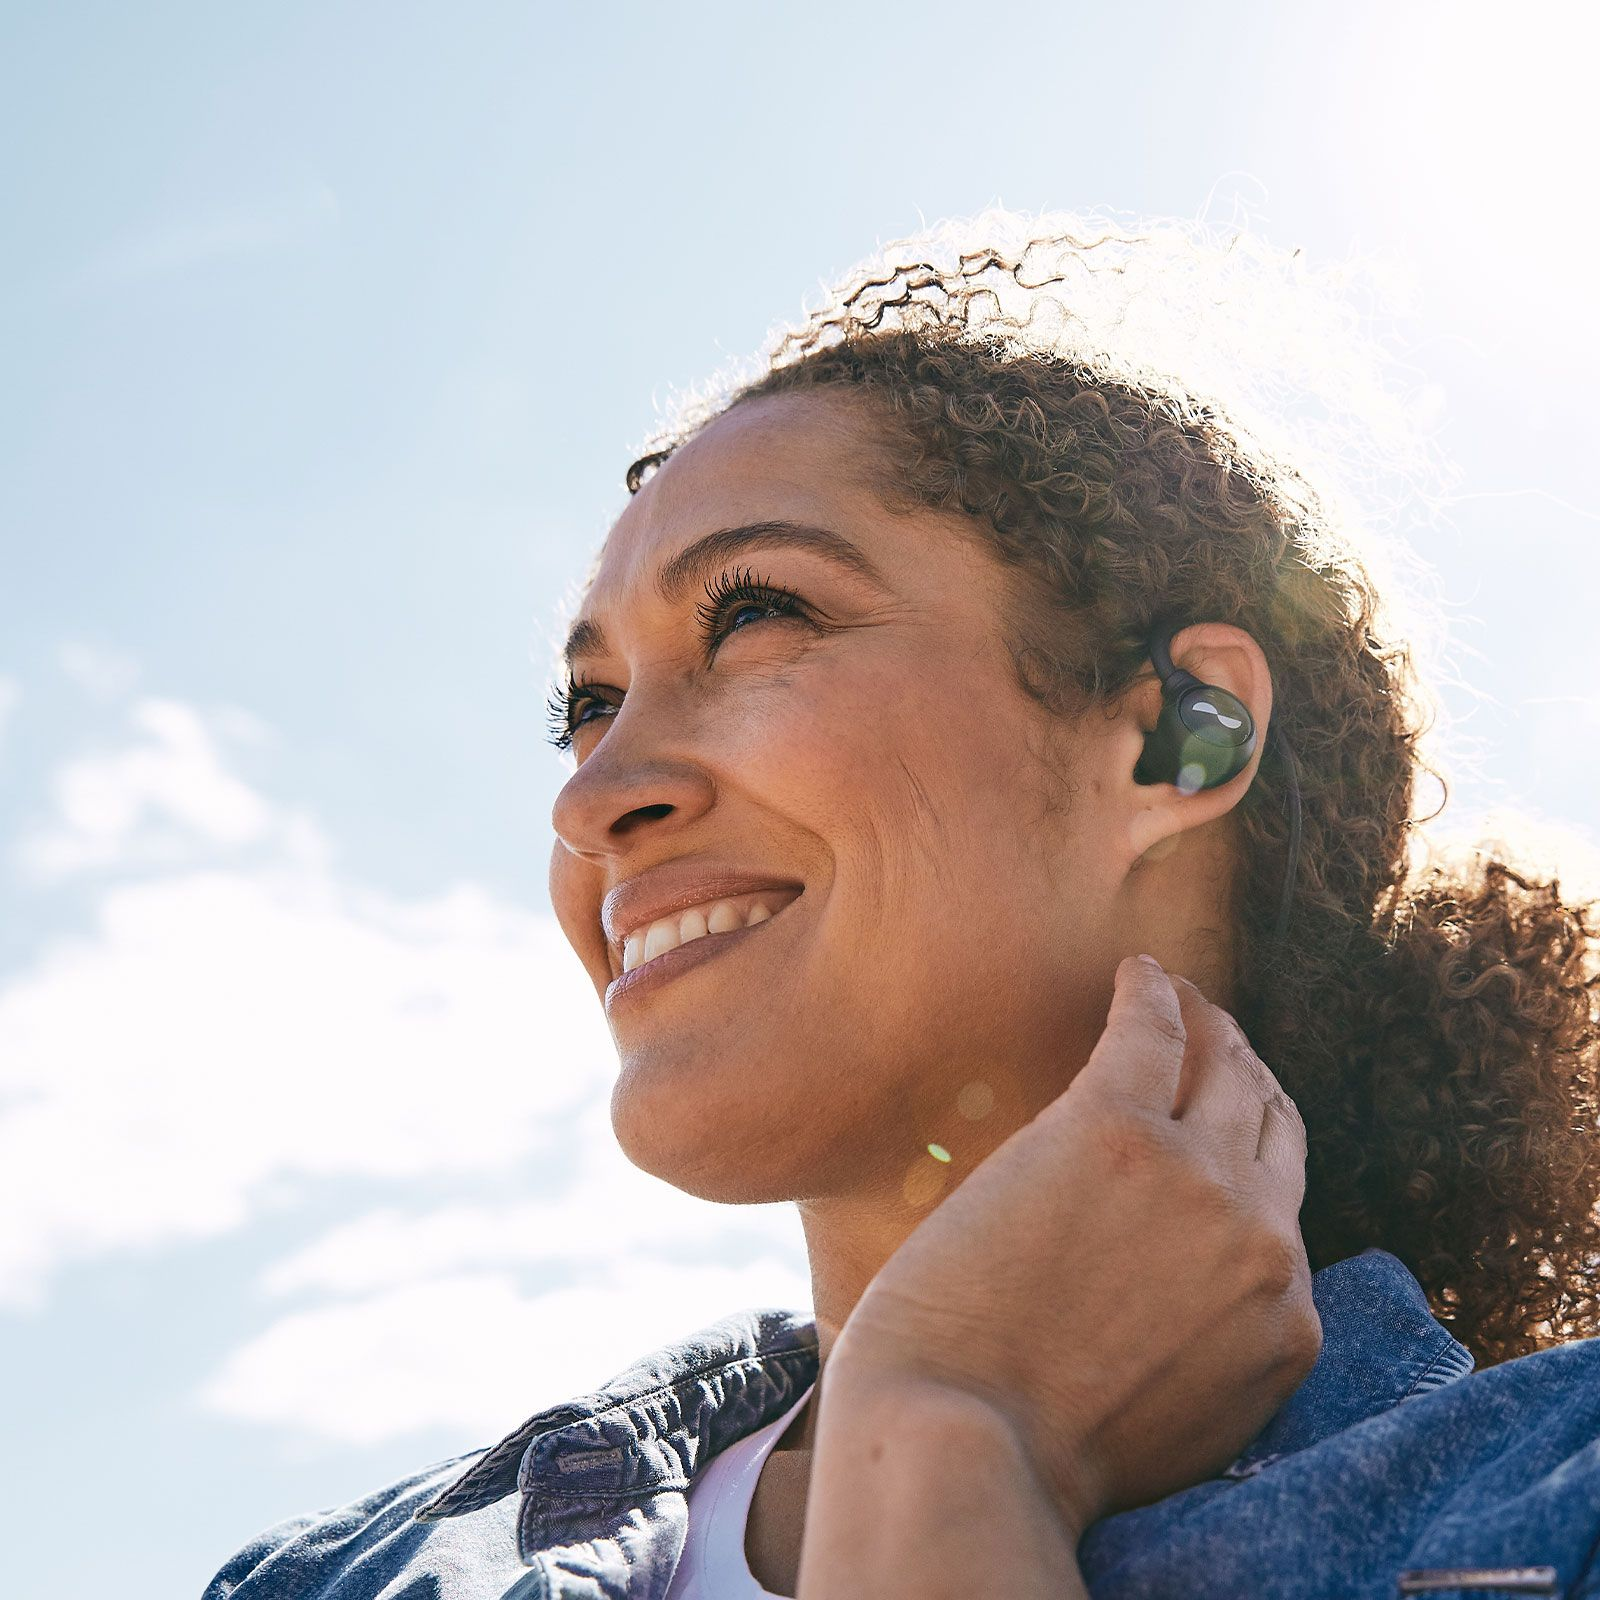 Person outside with NURALOOP earbuds in ears about to tap a touch button to enable a feature